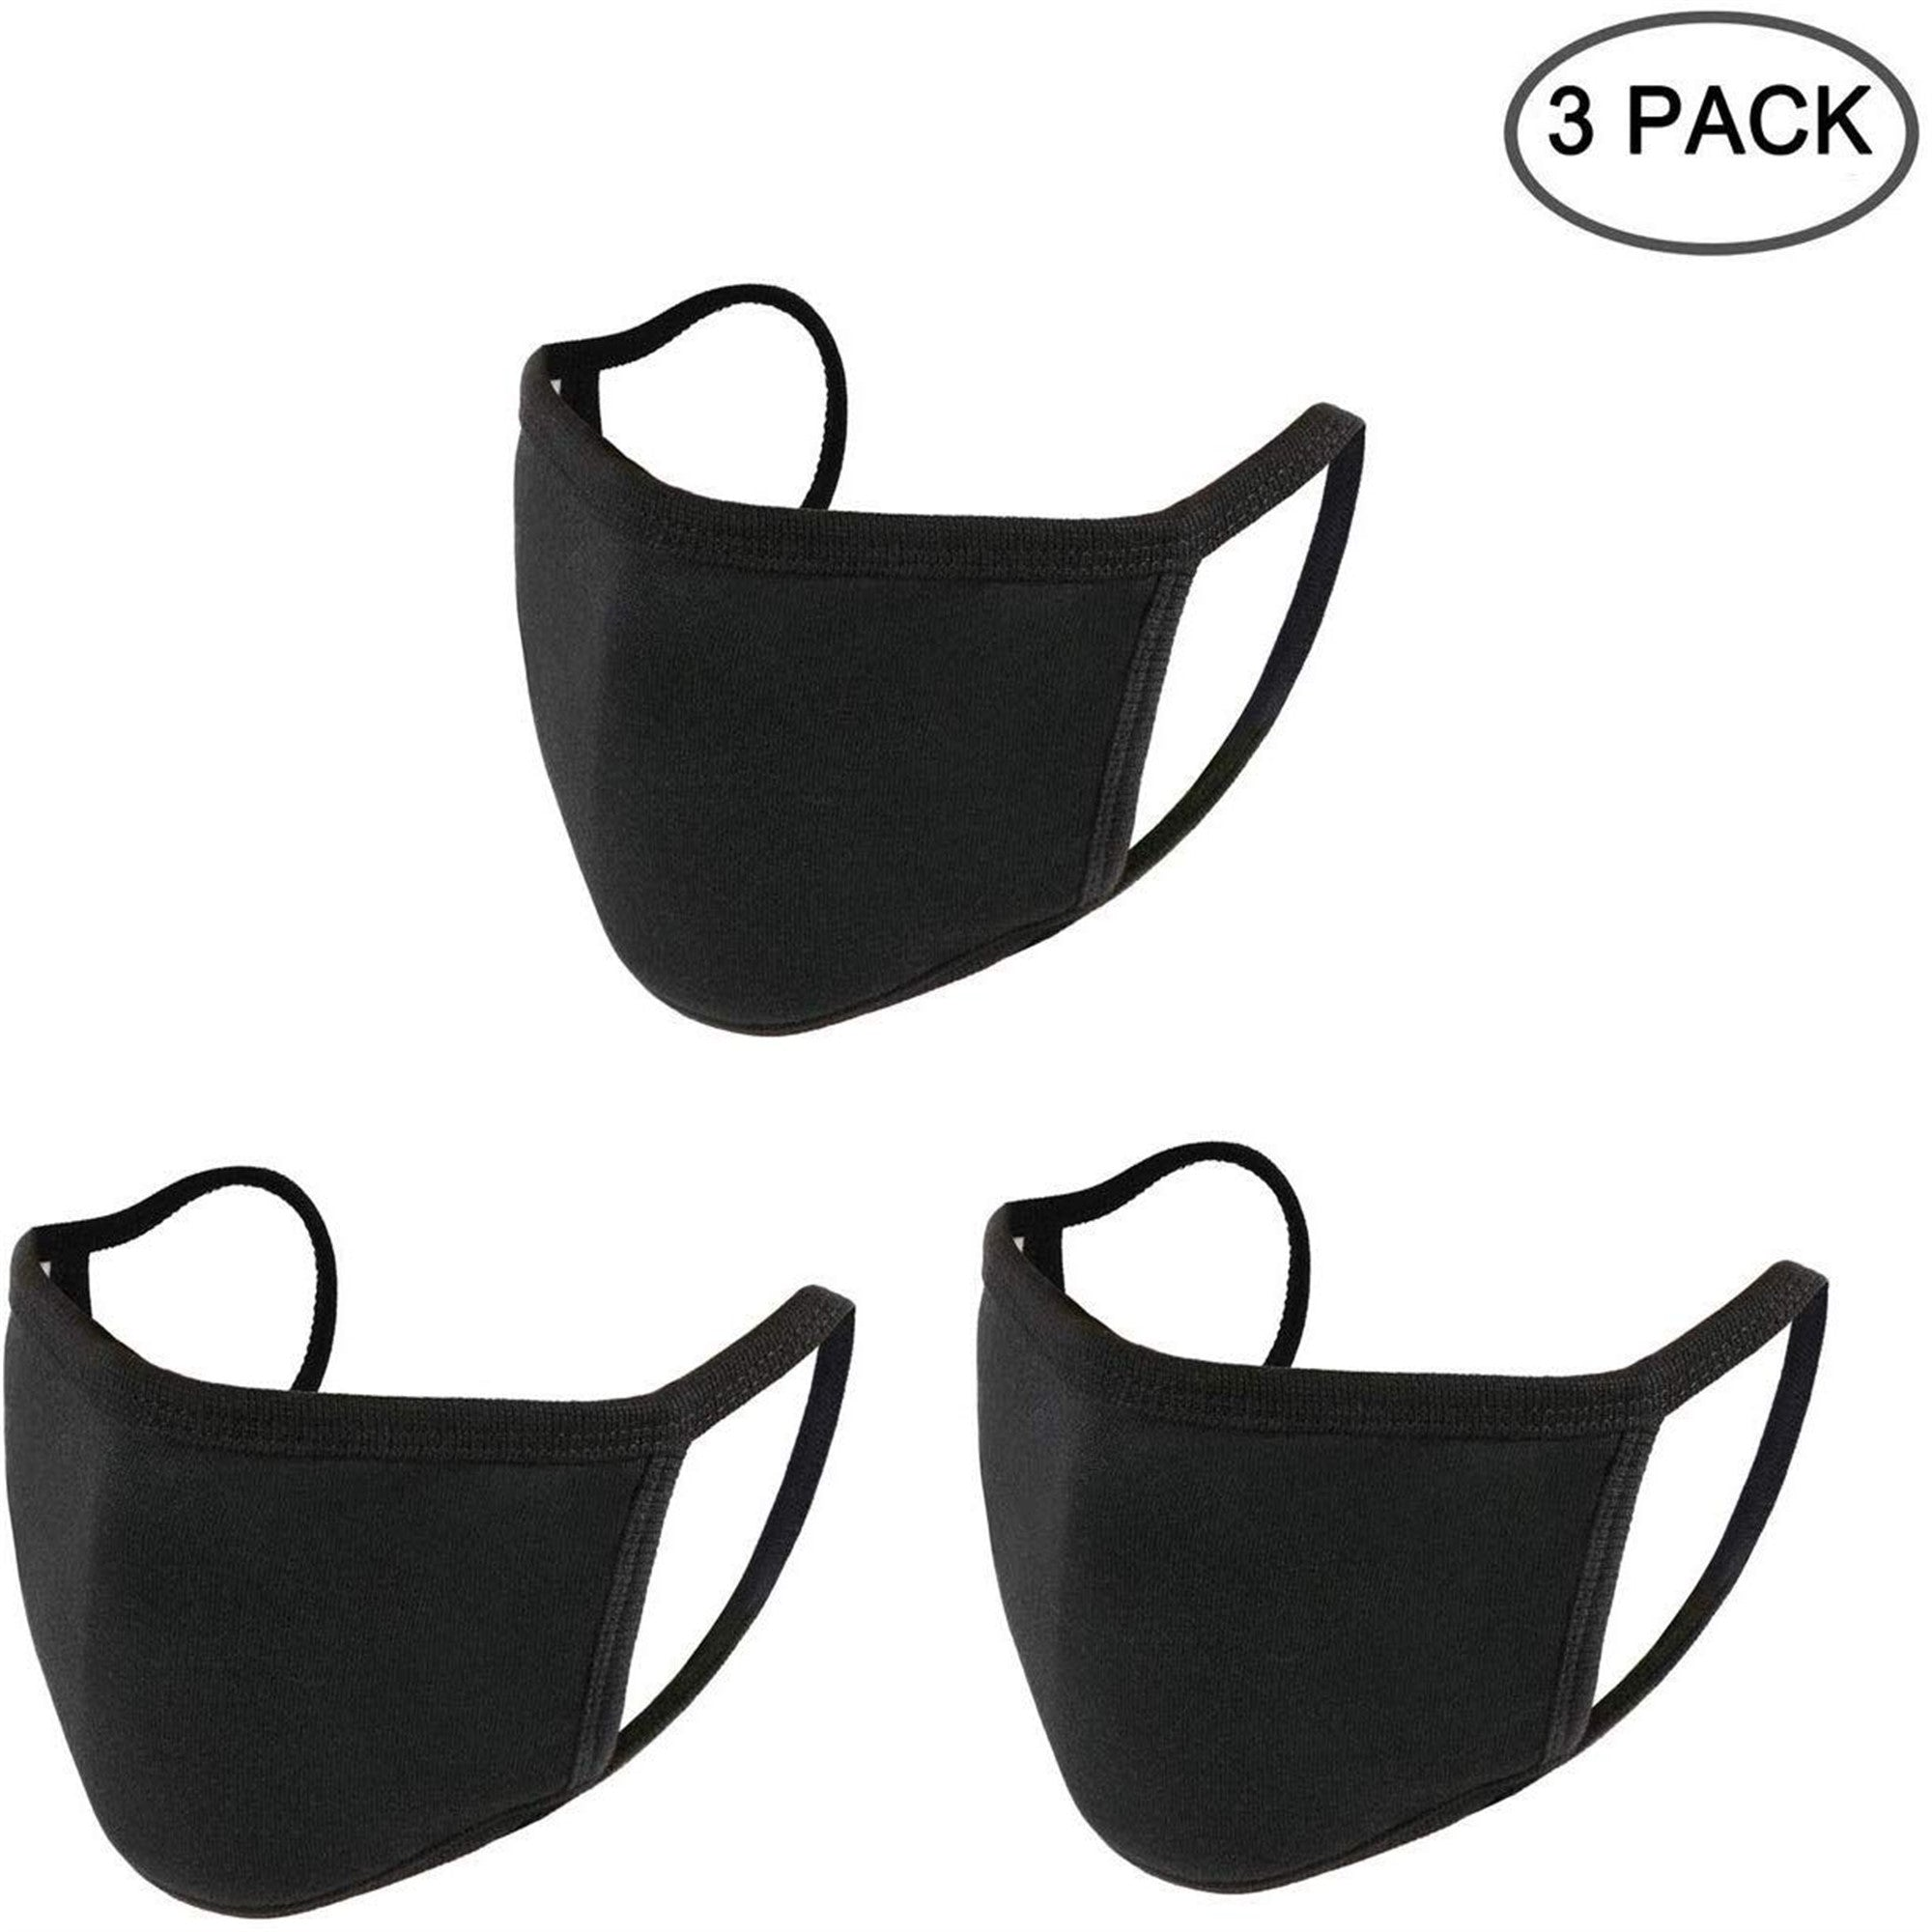 YAD International 3-Pack Reusable Face Masks - Made In USA in Black